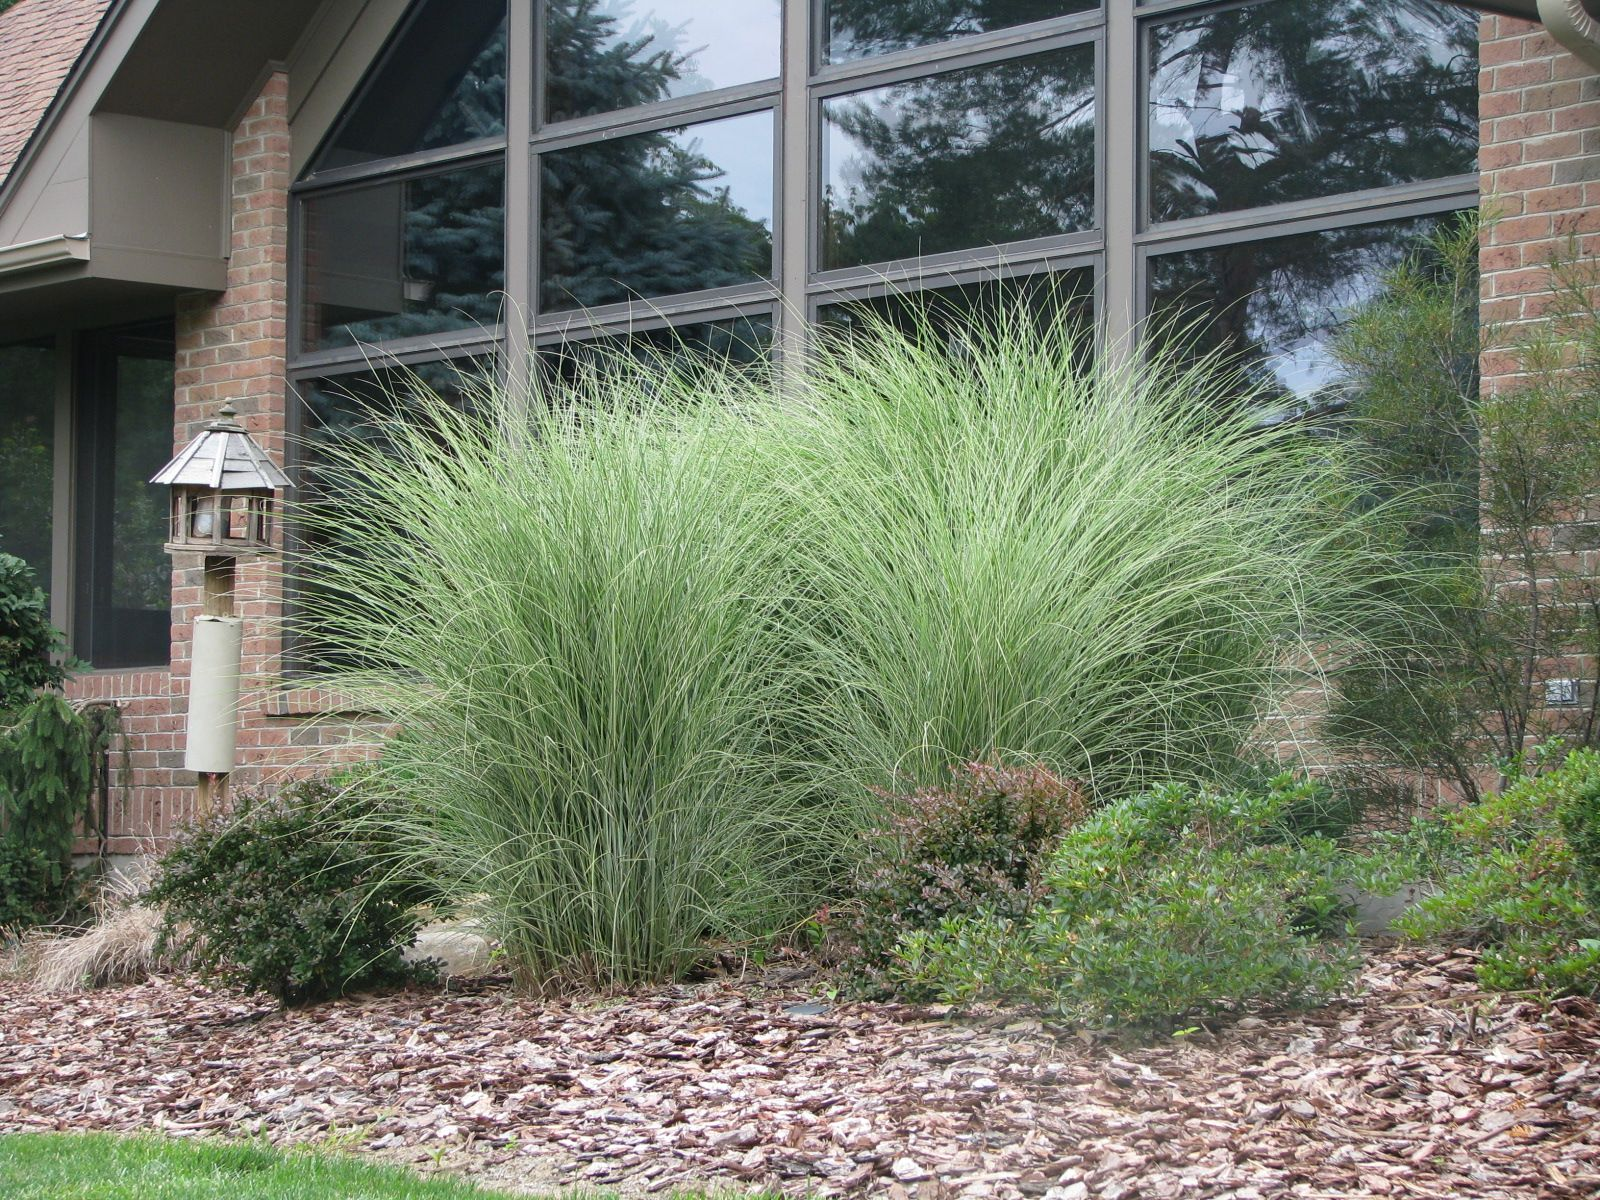 Grass random ornamental grass photos the alternative for Landscape design using ornamental grasses